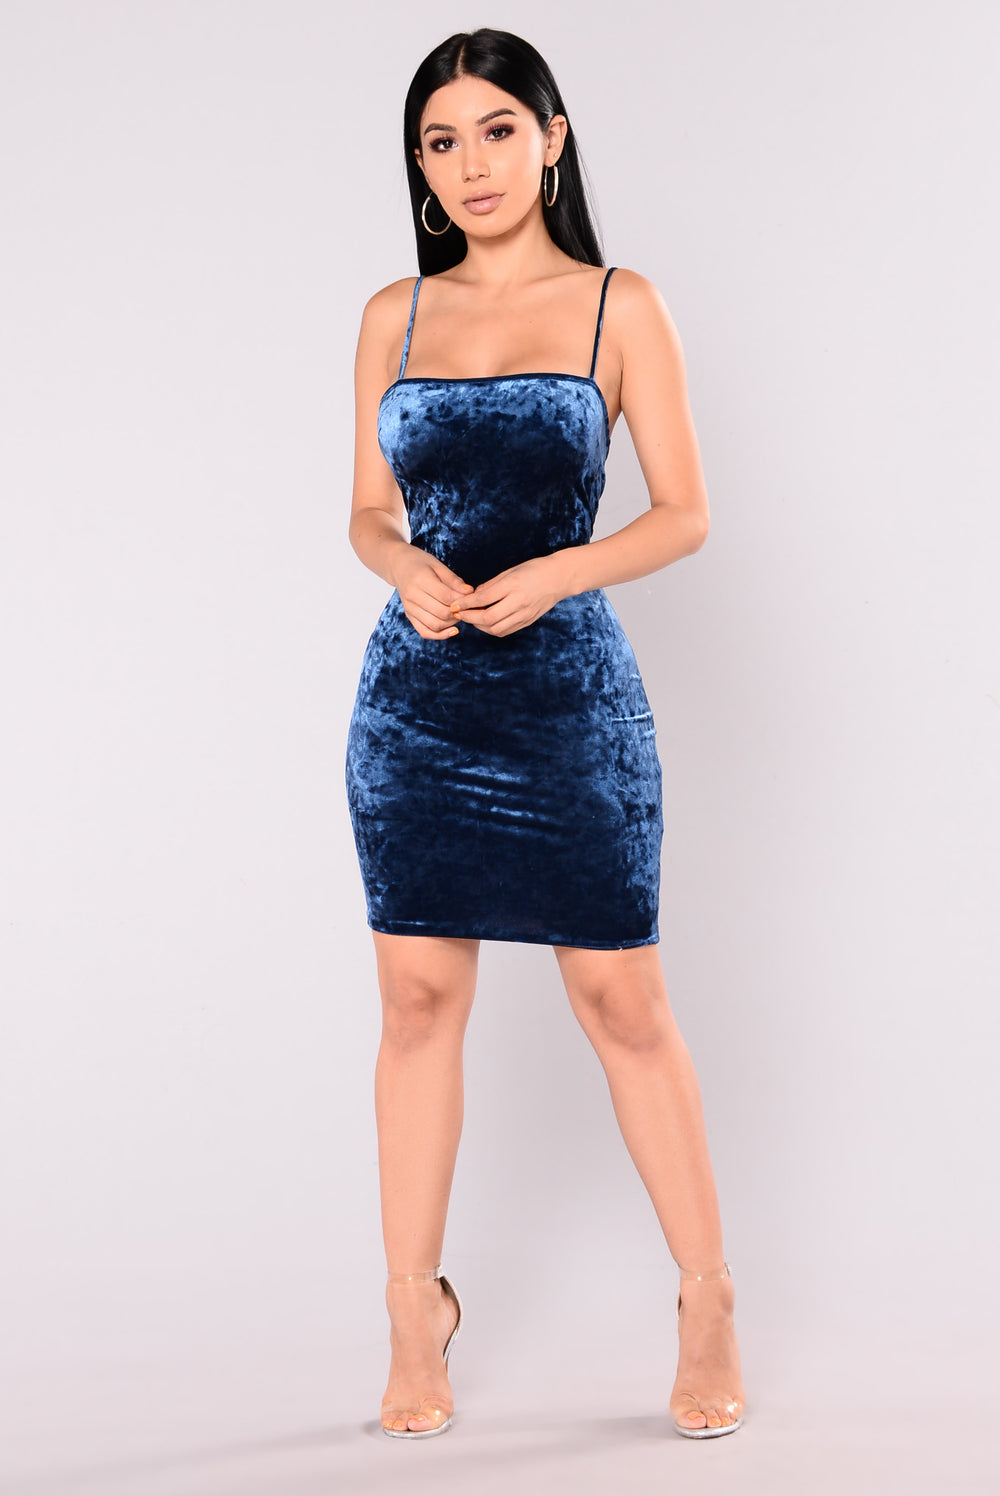 velvet dress dresses samara nova mini denim womens